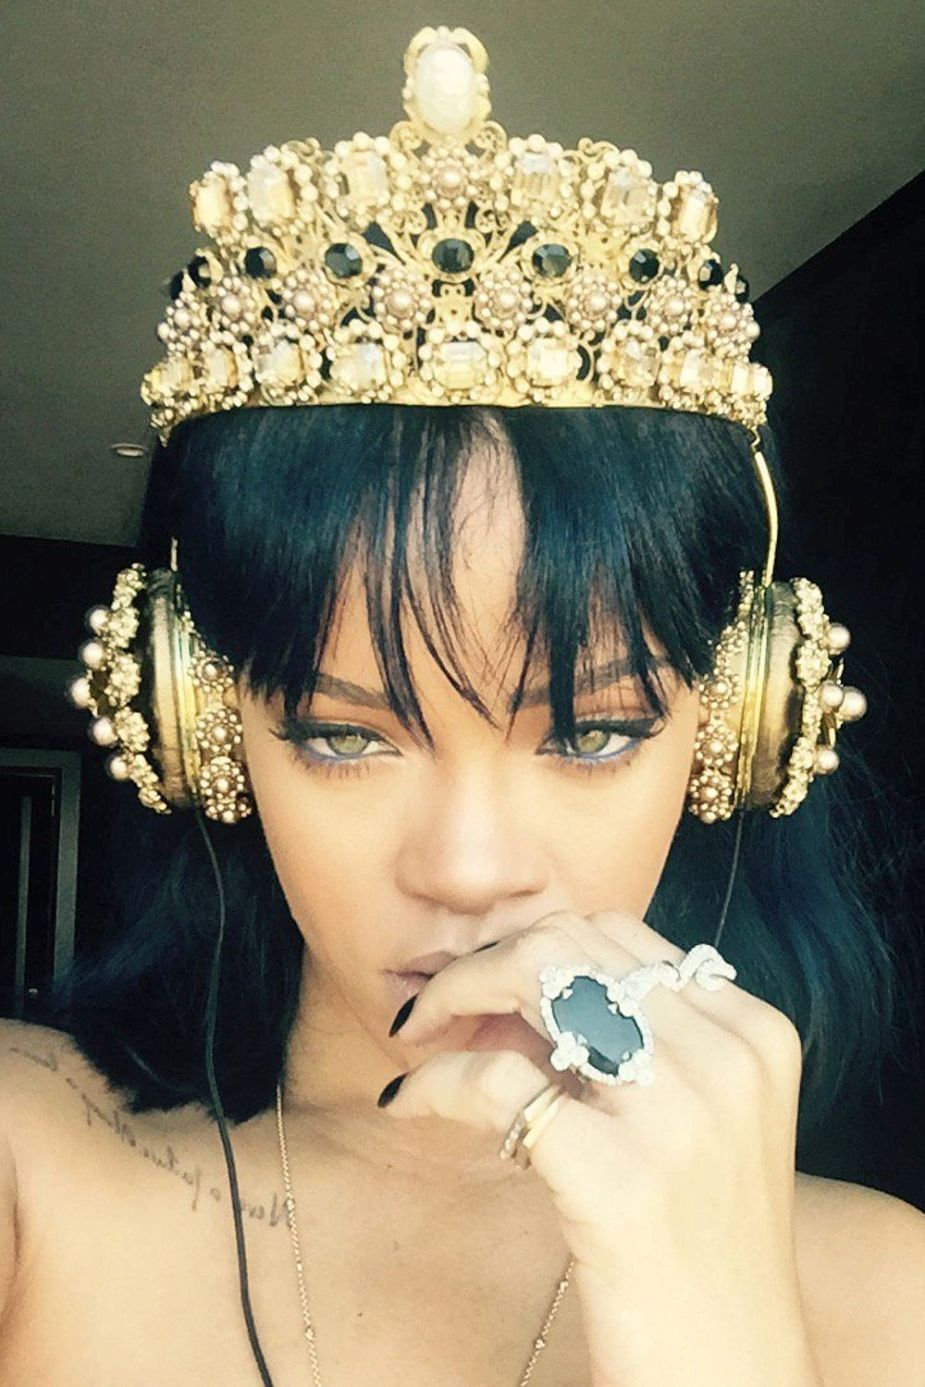 Rihanna-Instagam-FRENDS-Dolce-Gabbana-Embellished-Leather Headphones-with Gold-Crown-11